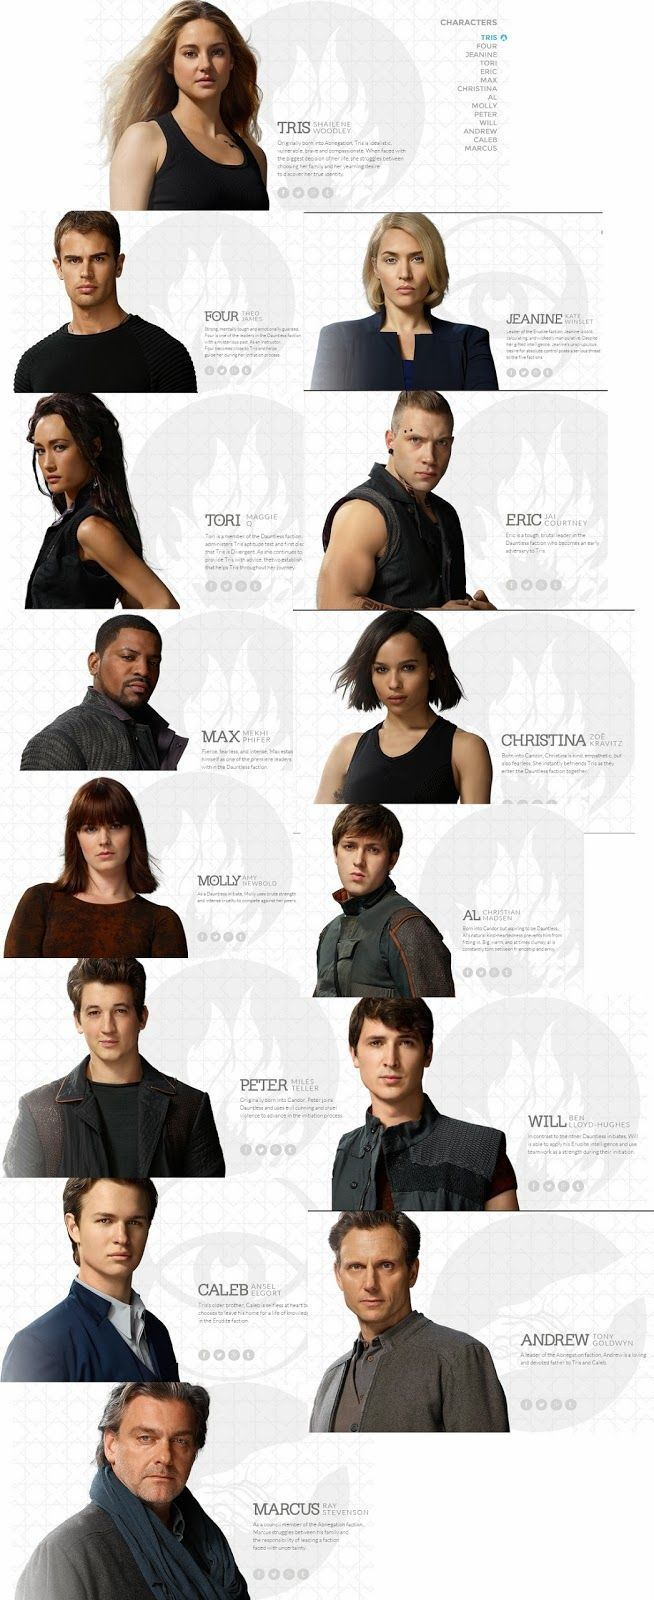 divergent* I think they messed up Peter and Al. Plus since when was Maz even a big part of the story? NEVER